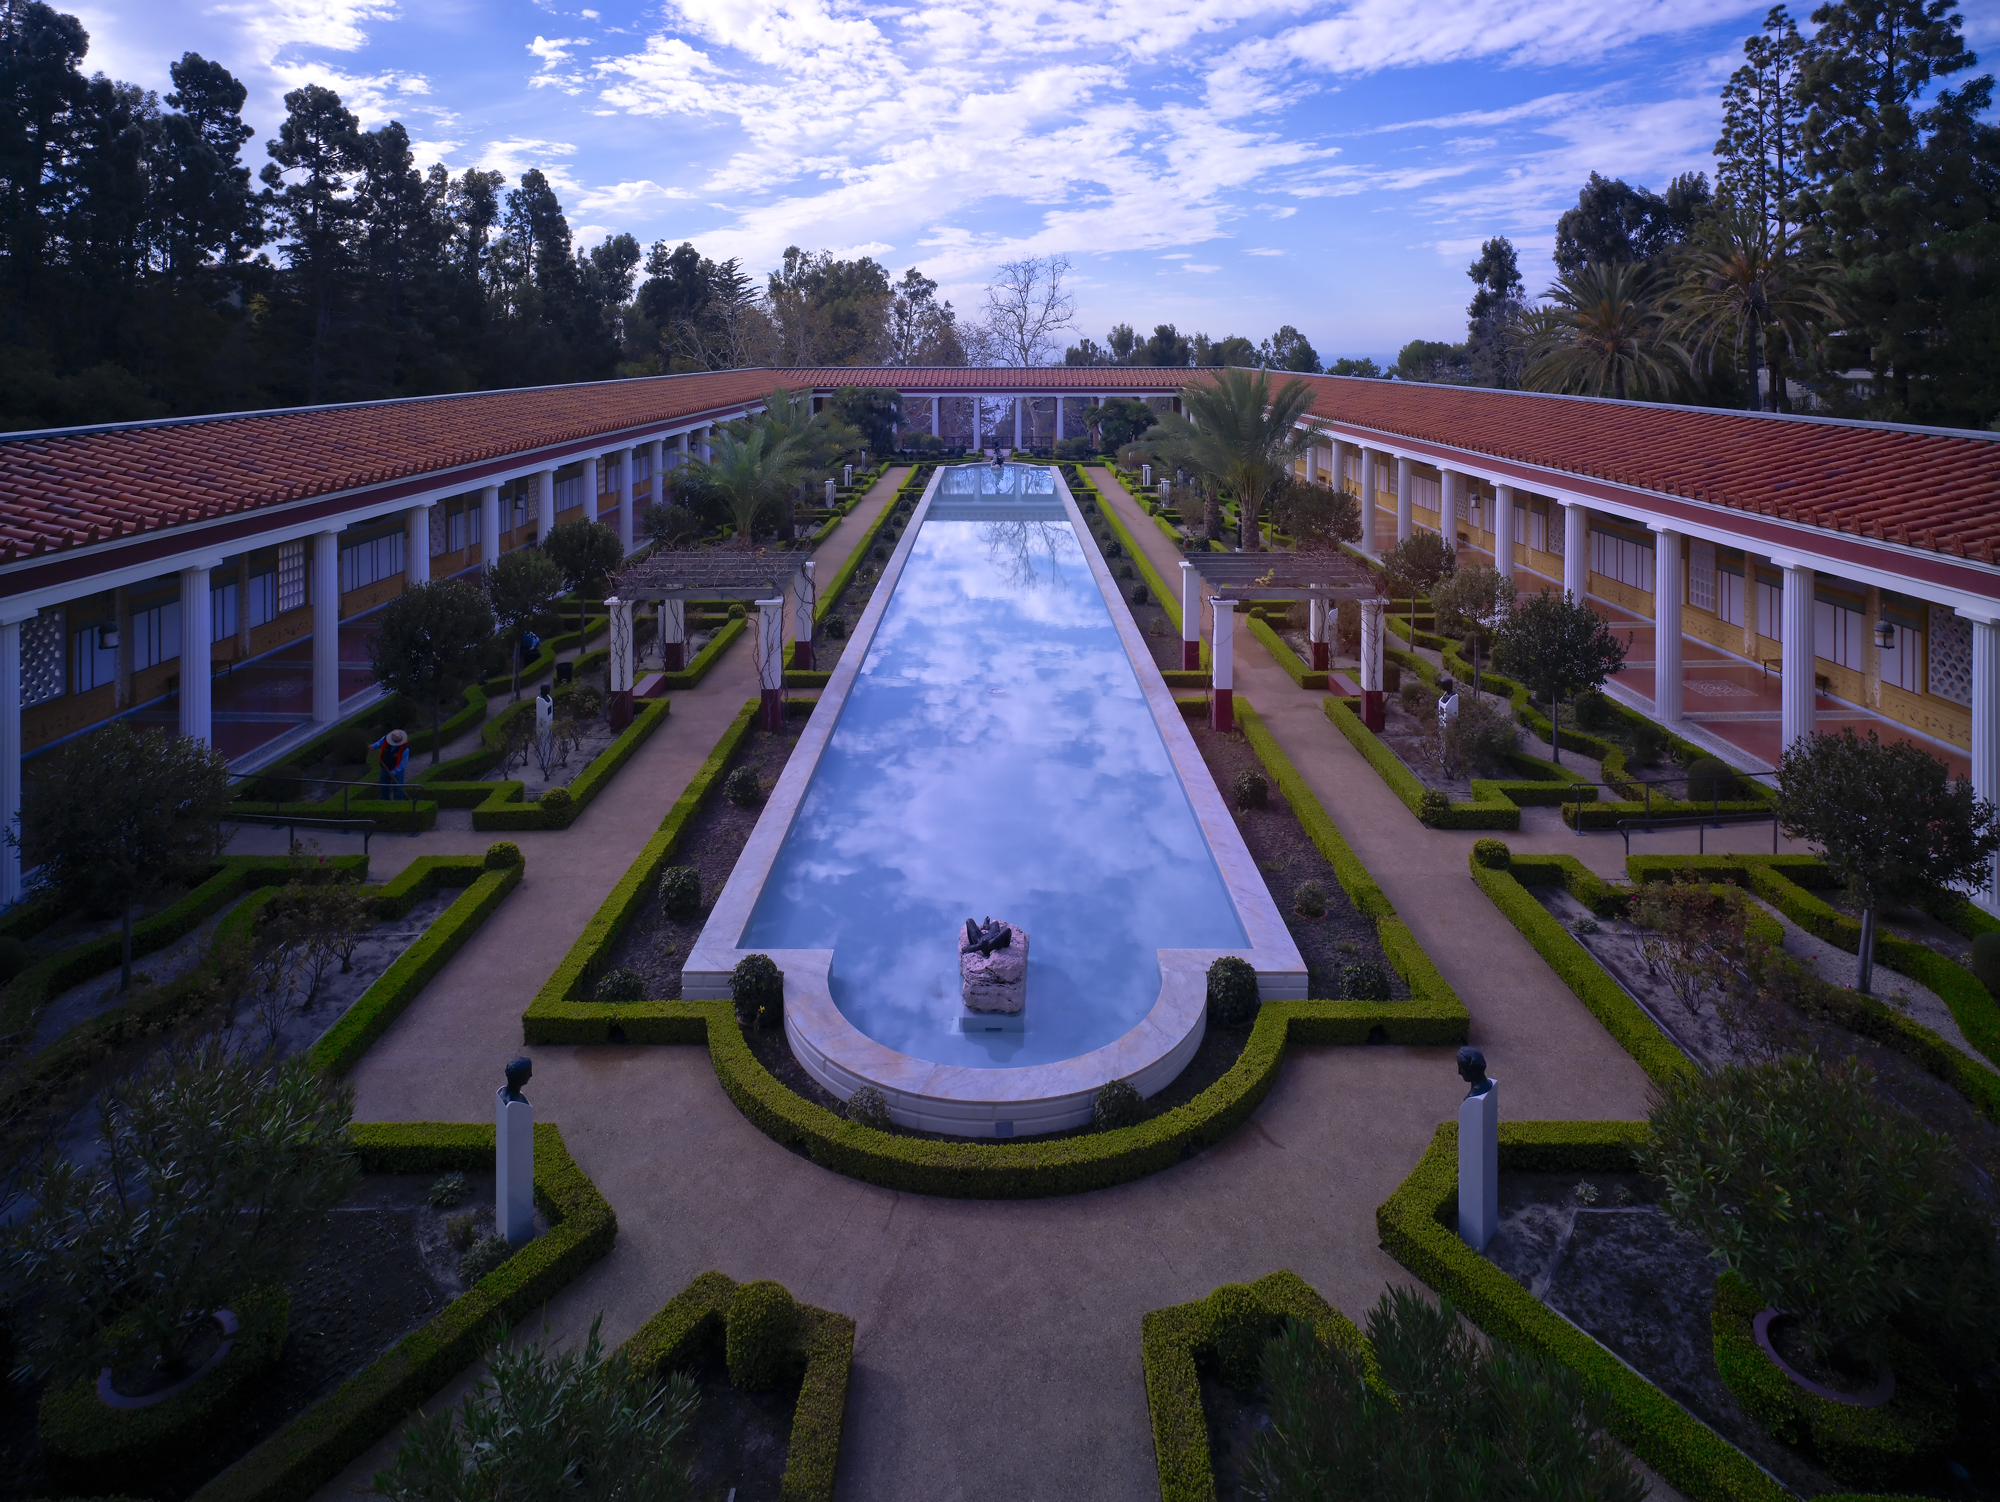 Getty Voices: The Transformative Outer Peristyle